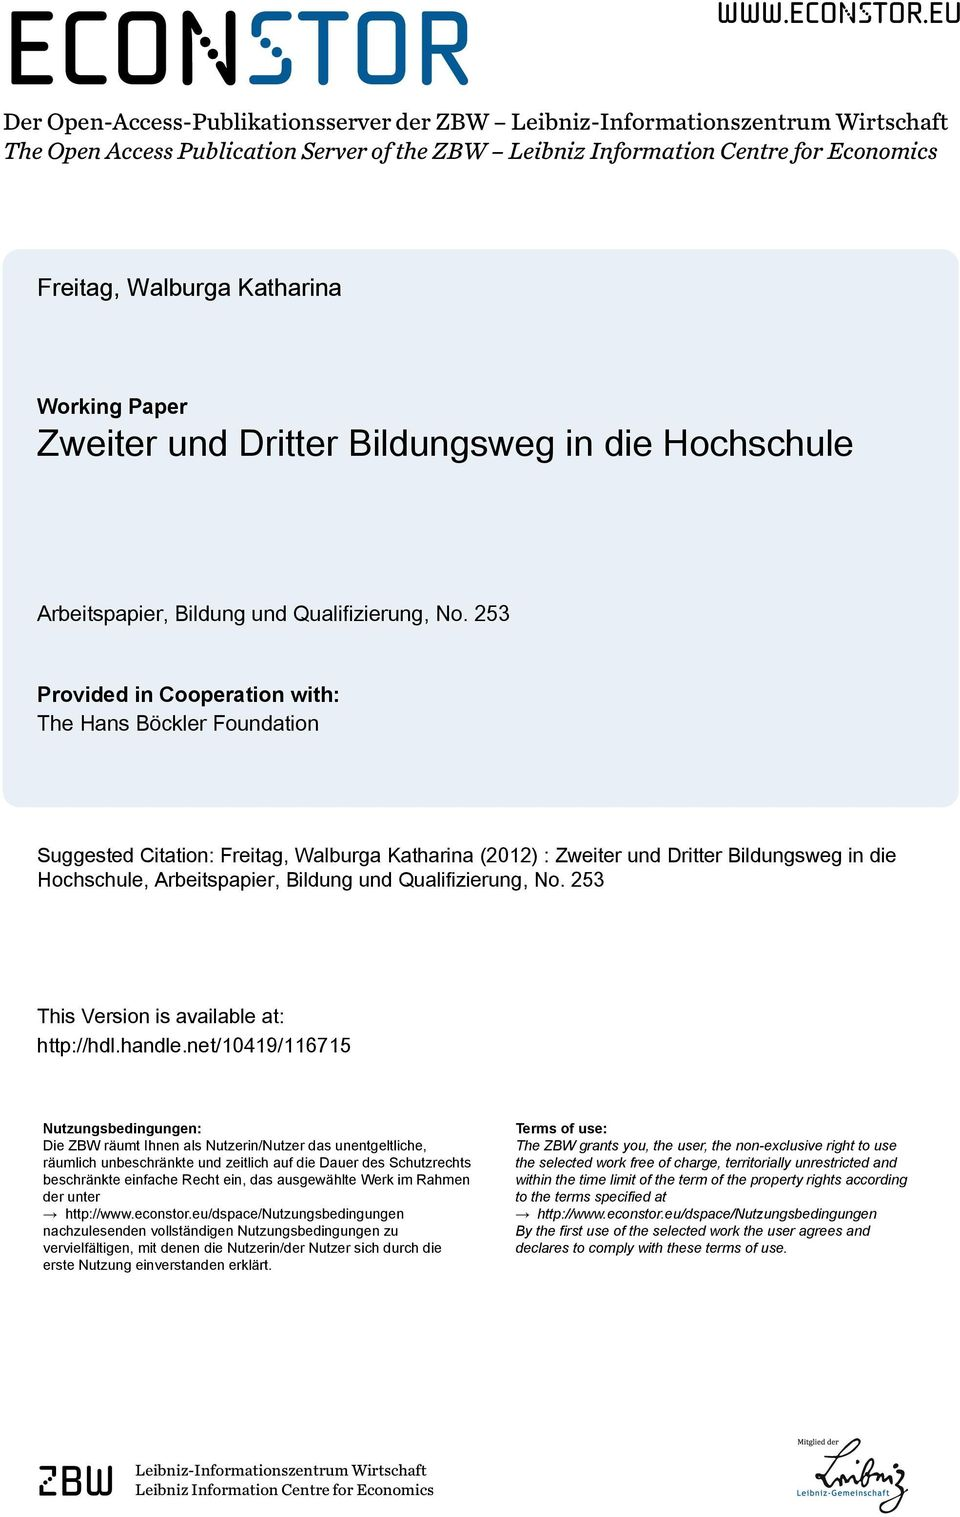 eu Der Open-Access-Publikationsserver der ZBW Leibniz-Informationszentrum Wirtschaft The Open Access Publication Server of the ZBW Leibniz Information Centre for Economics Freitag, Walburga Katharina